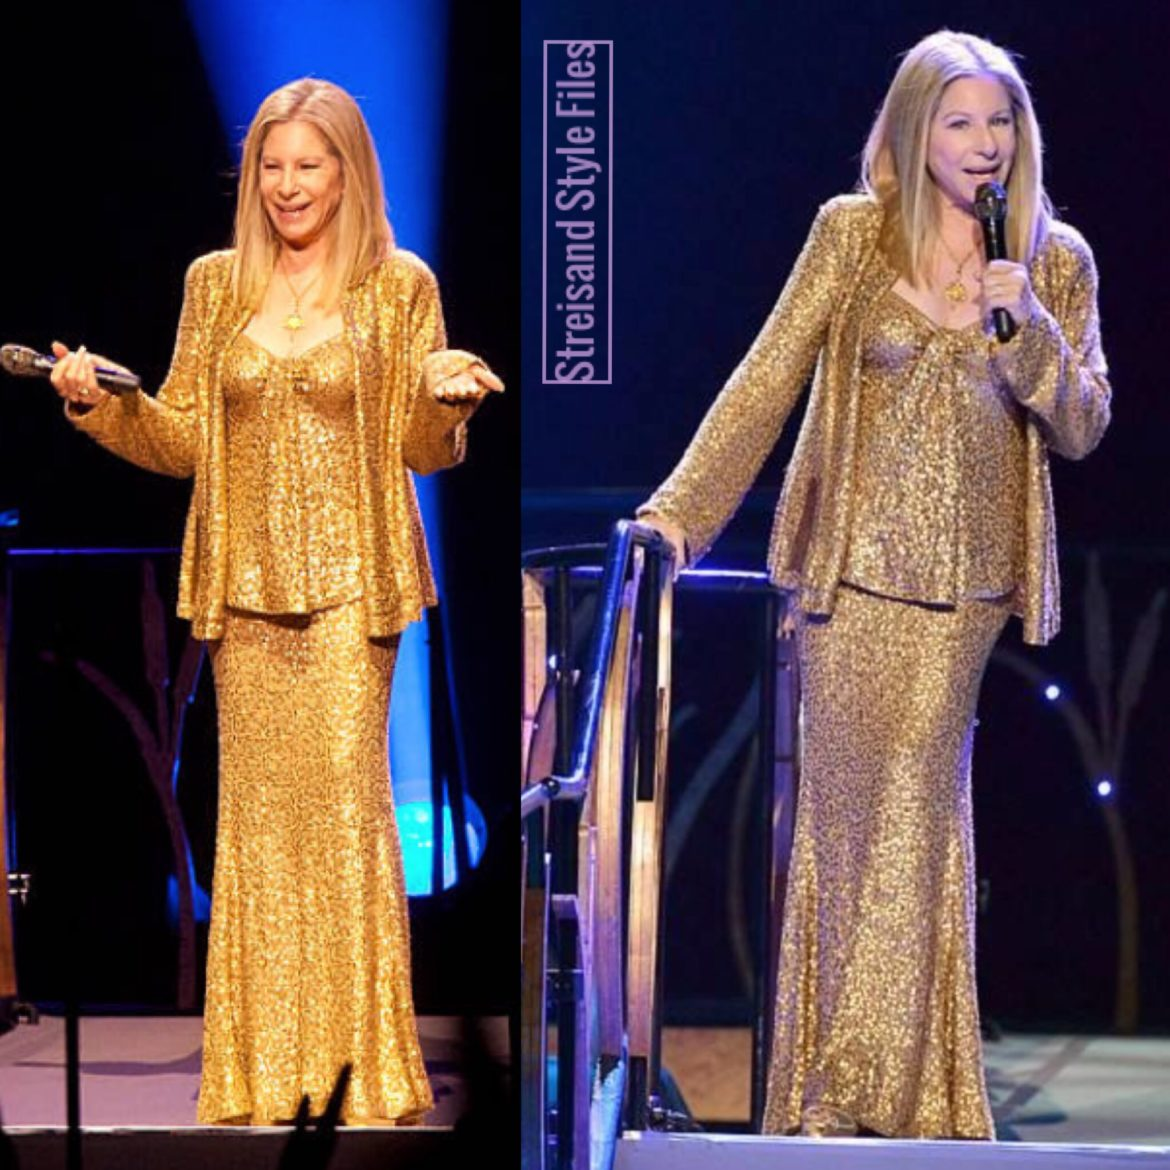 2013 Streisand Live, Berlin Show In Gold Donna Karan